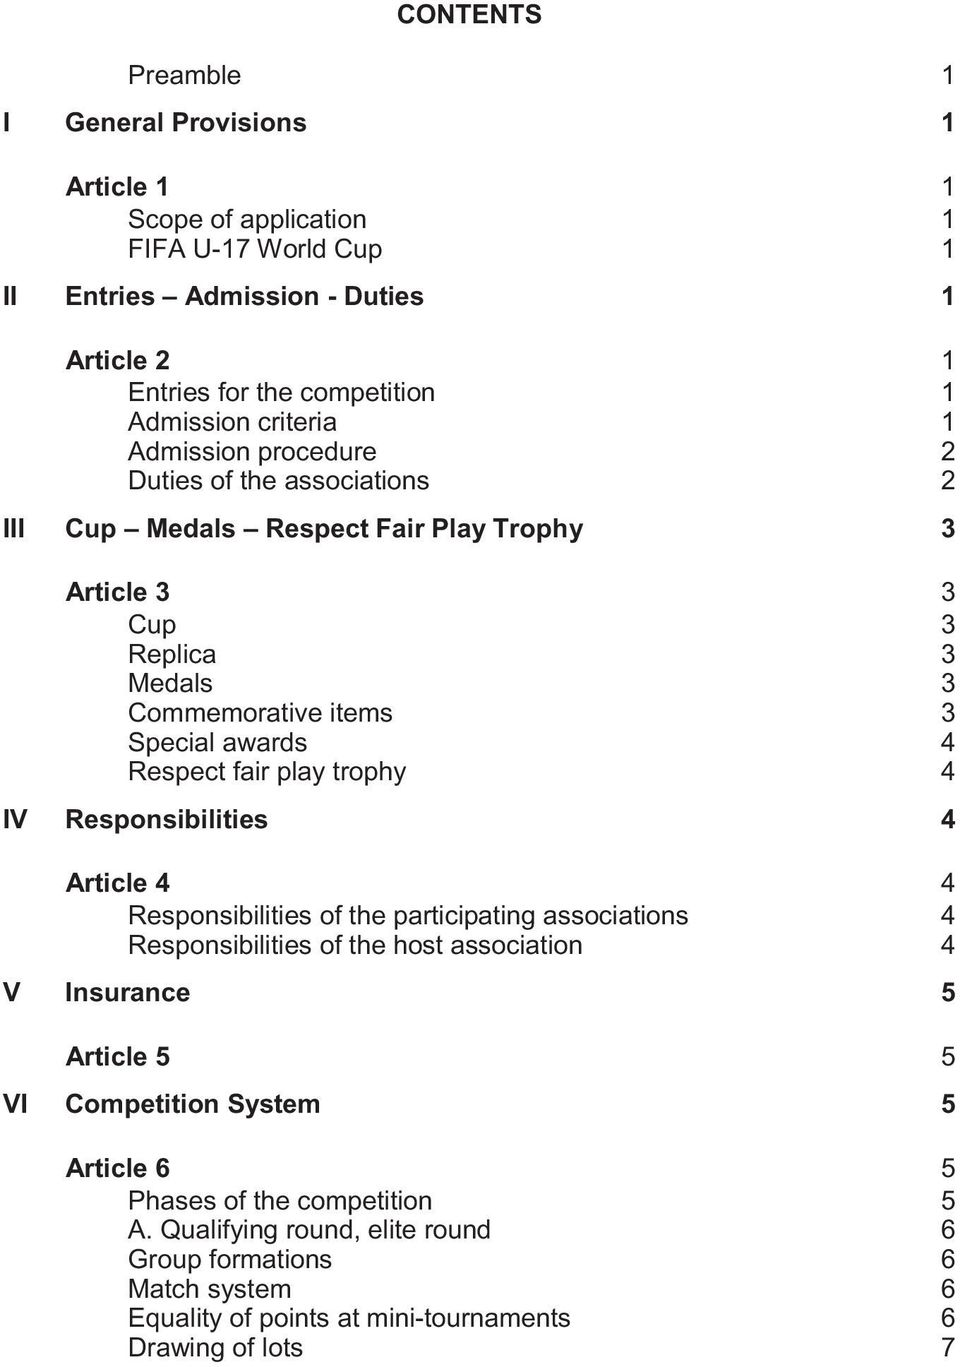 Cup 3 3 Replica 3 3 Medals 3 3 Commemorative items items 3 3 Special awards 4 4 Respect fair fair play play trophy 4 4 IV IV Responsibilities 4 4 Article 4 4 4 4 Responsibilities of of the the